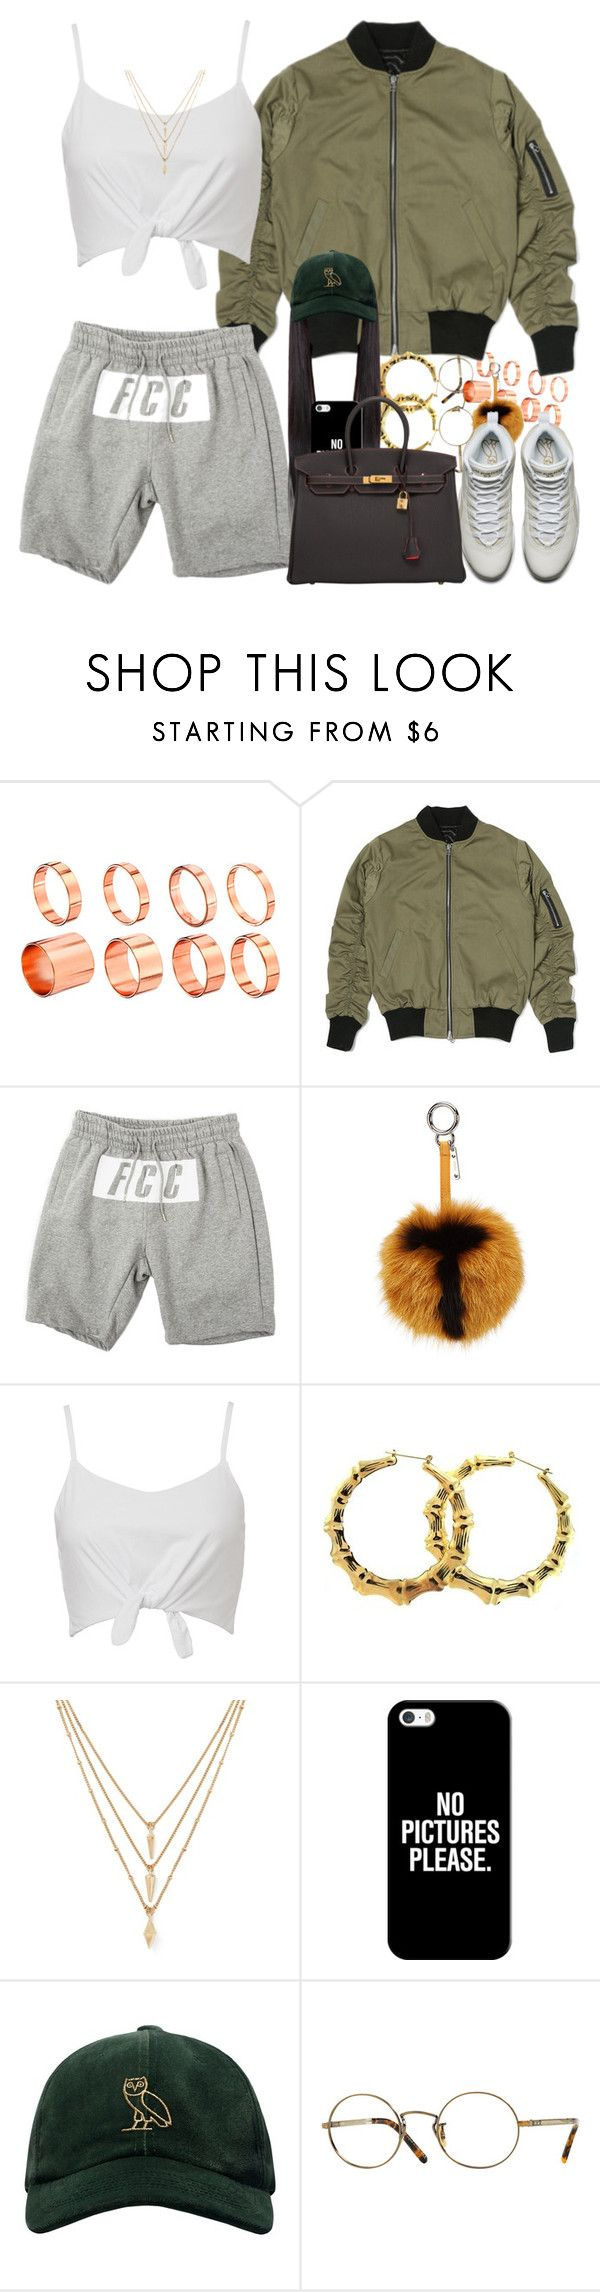 """OVO Crew"" by dope-madness ❤ liked on Polyvore featuring ASOS, Fendi, Forever 21, Casetify, October's Very Own, Oliver Peoples and Hermès"